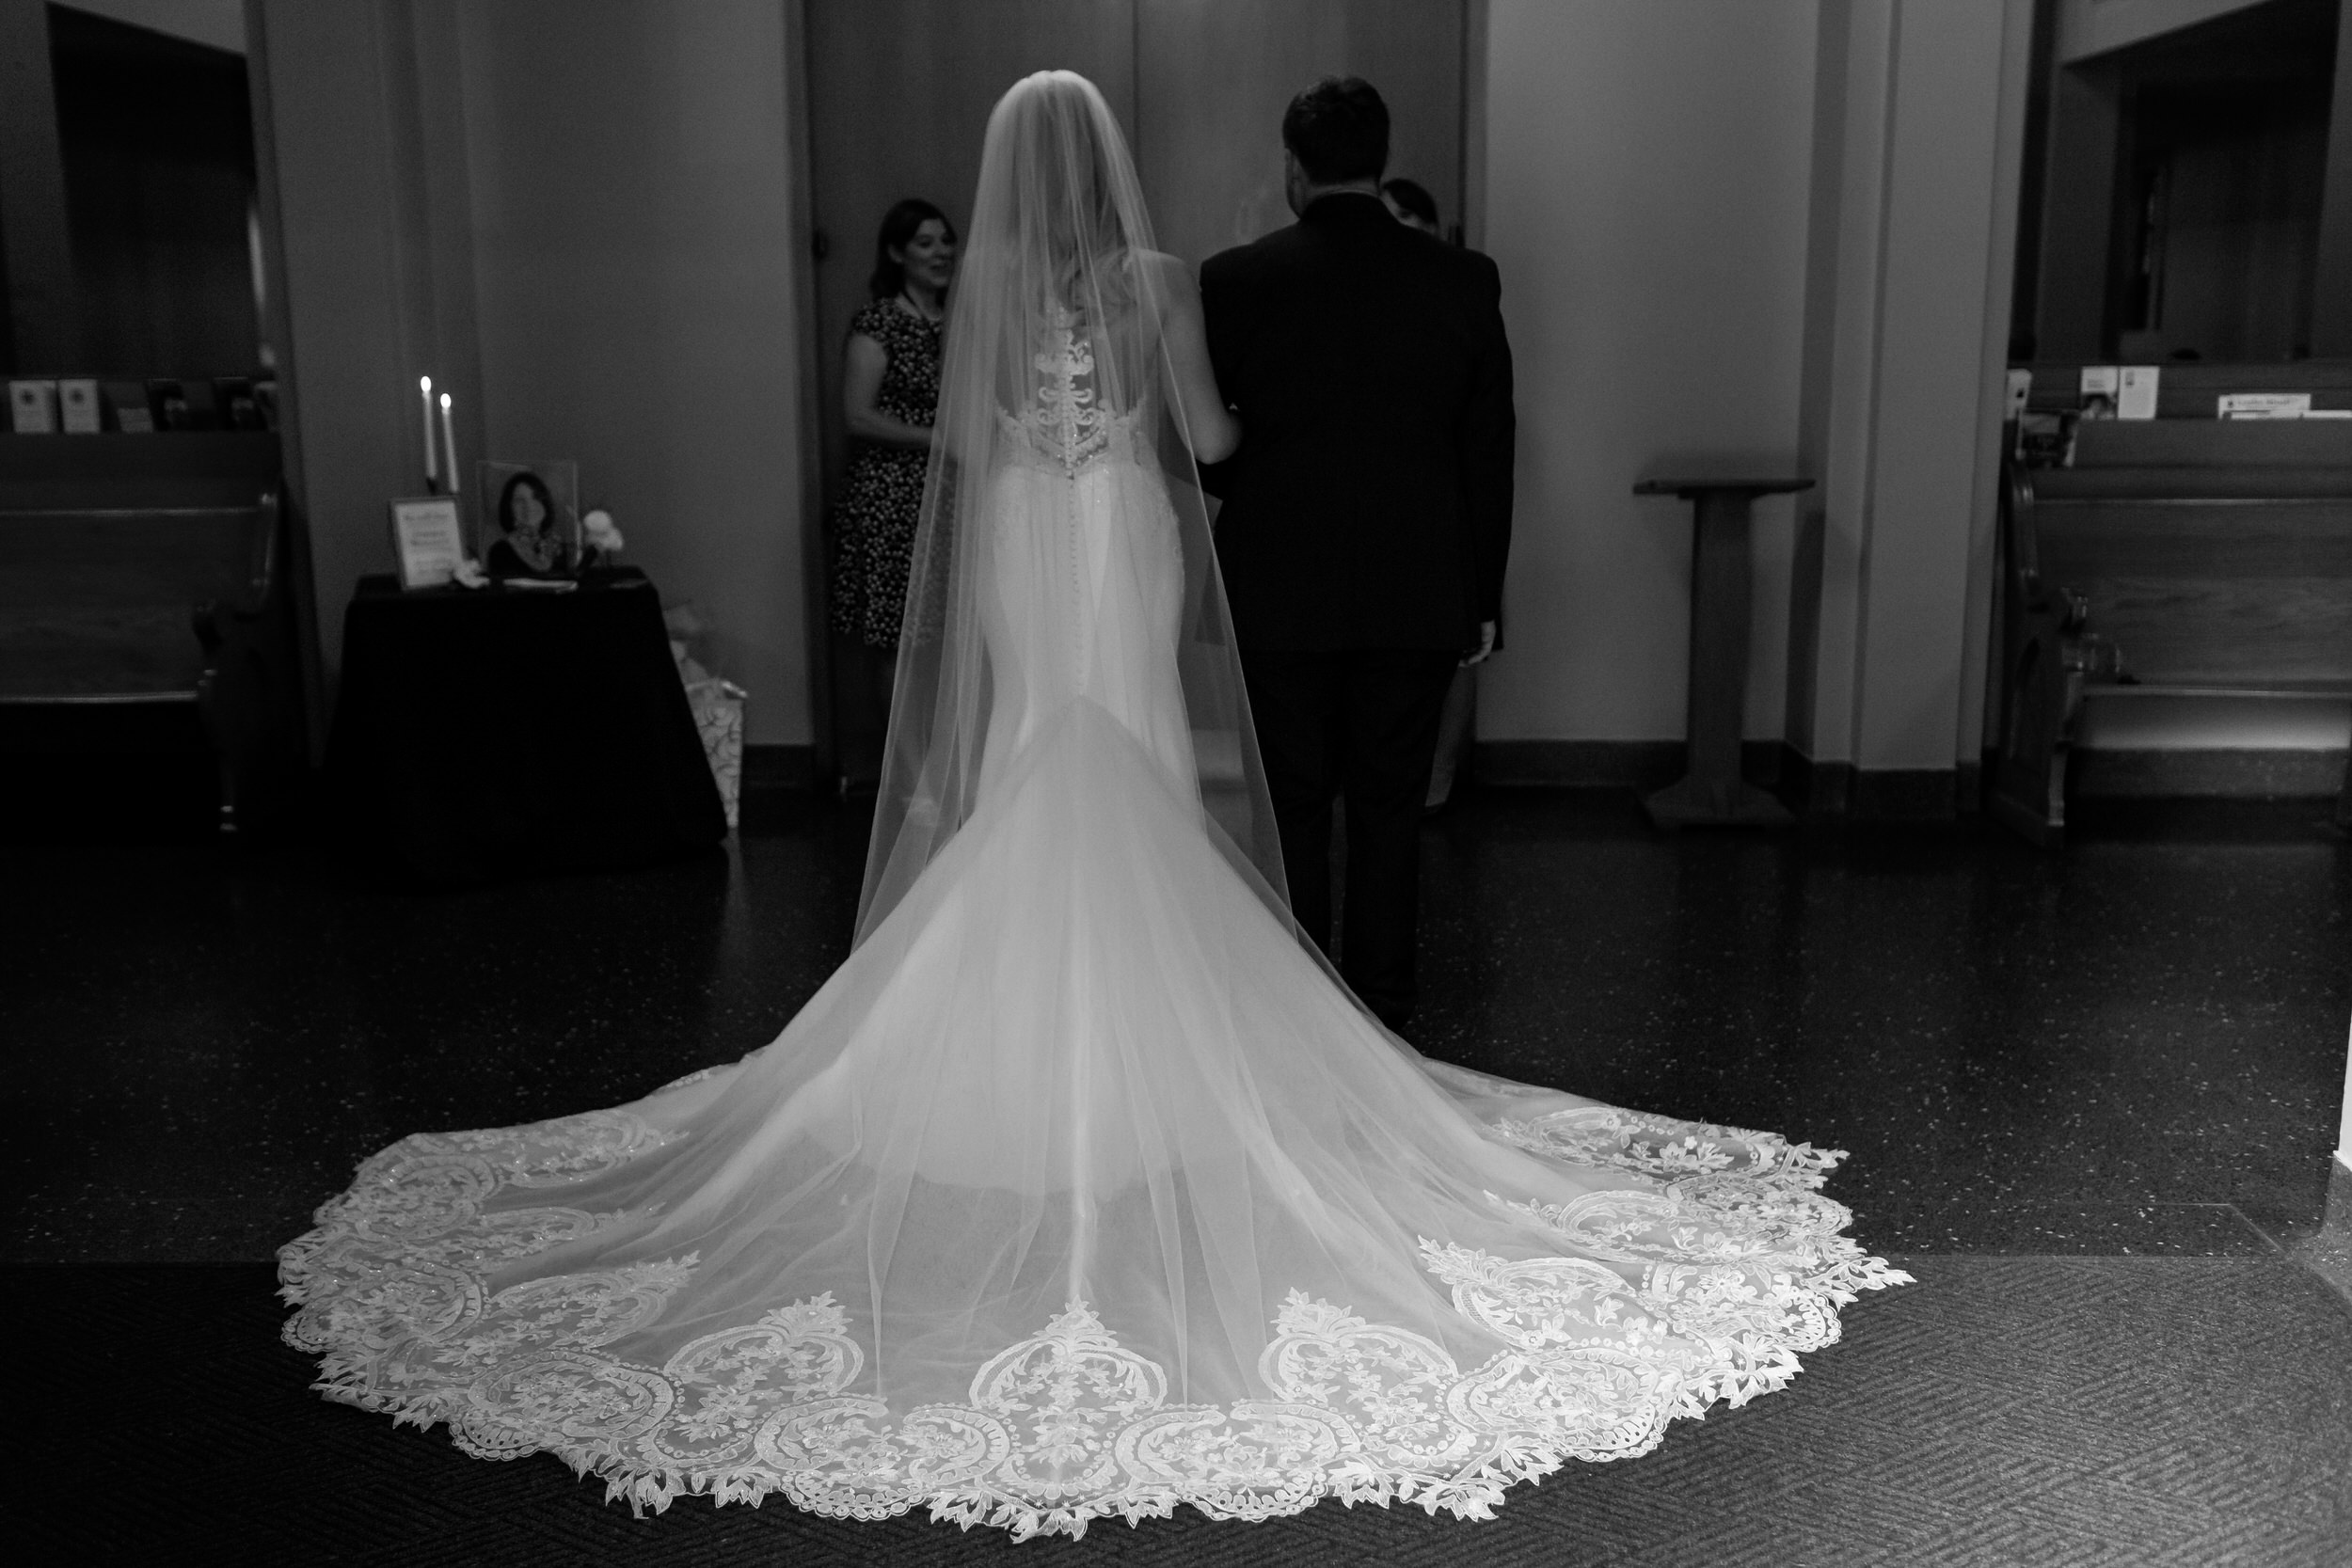 salem_convention_center_wedding_stark_photography_012